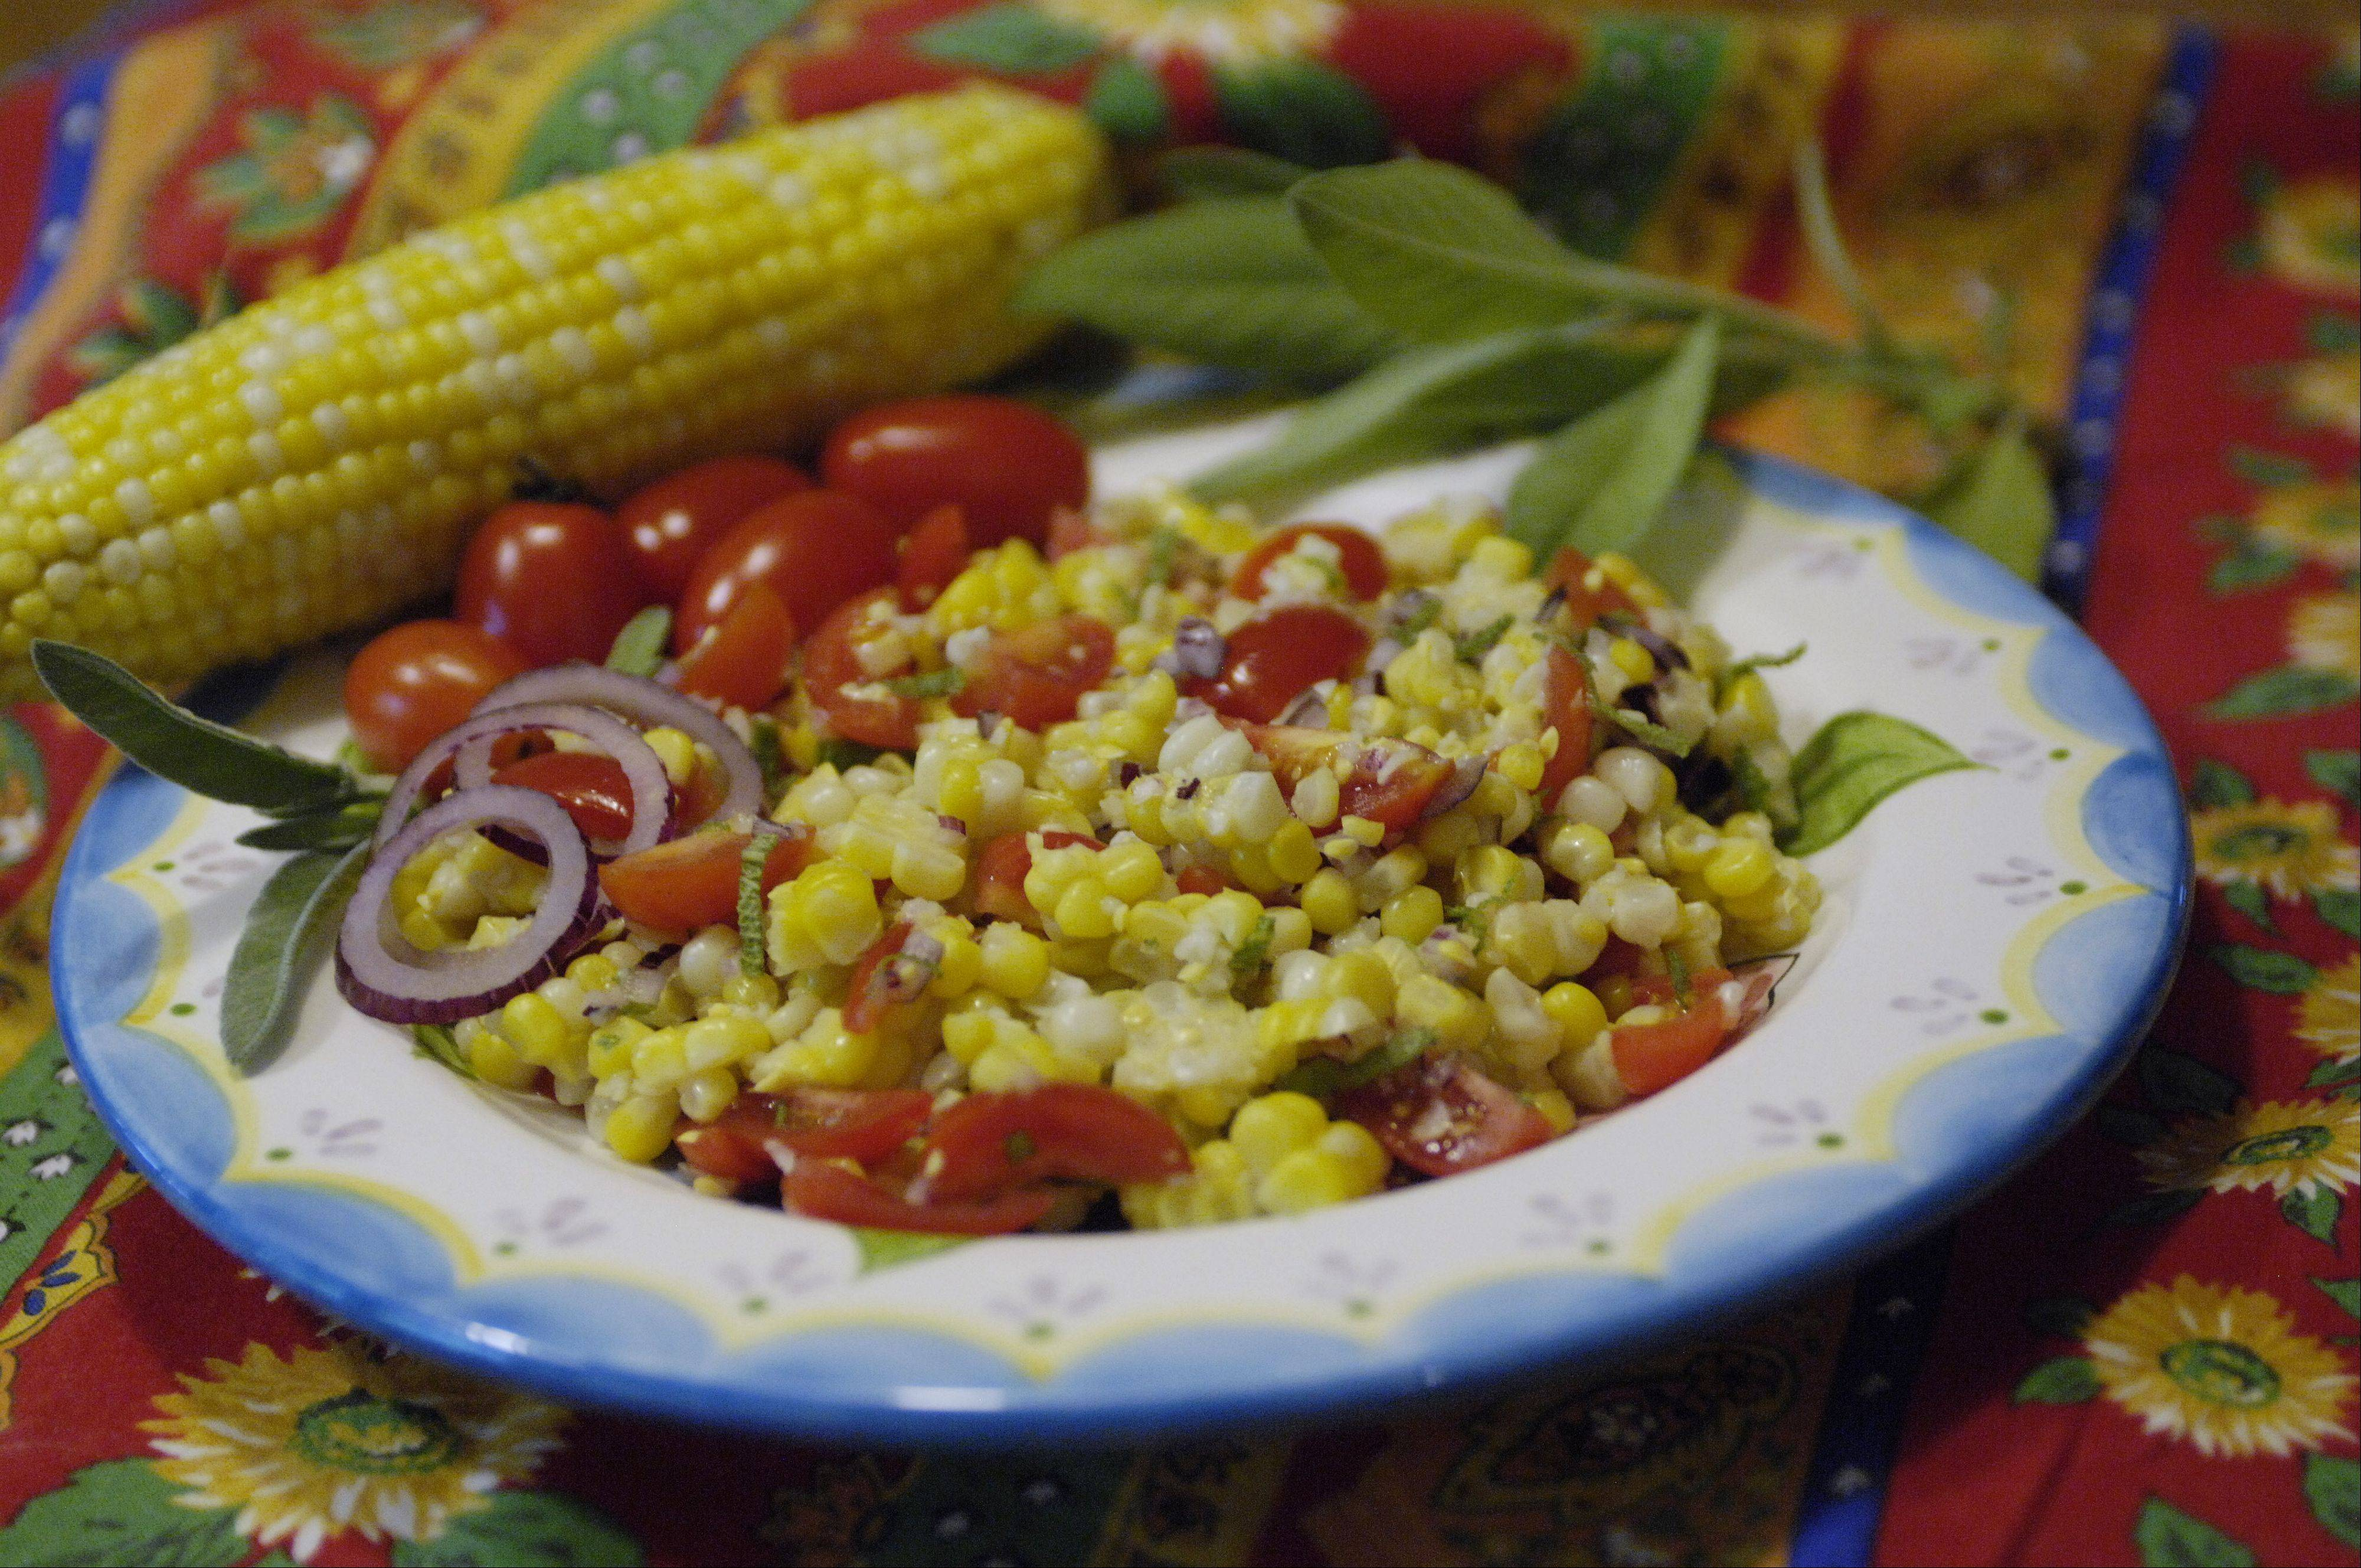 Don't waste cooked corn on the cob. Use the kernels in a summer corn salad.